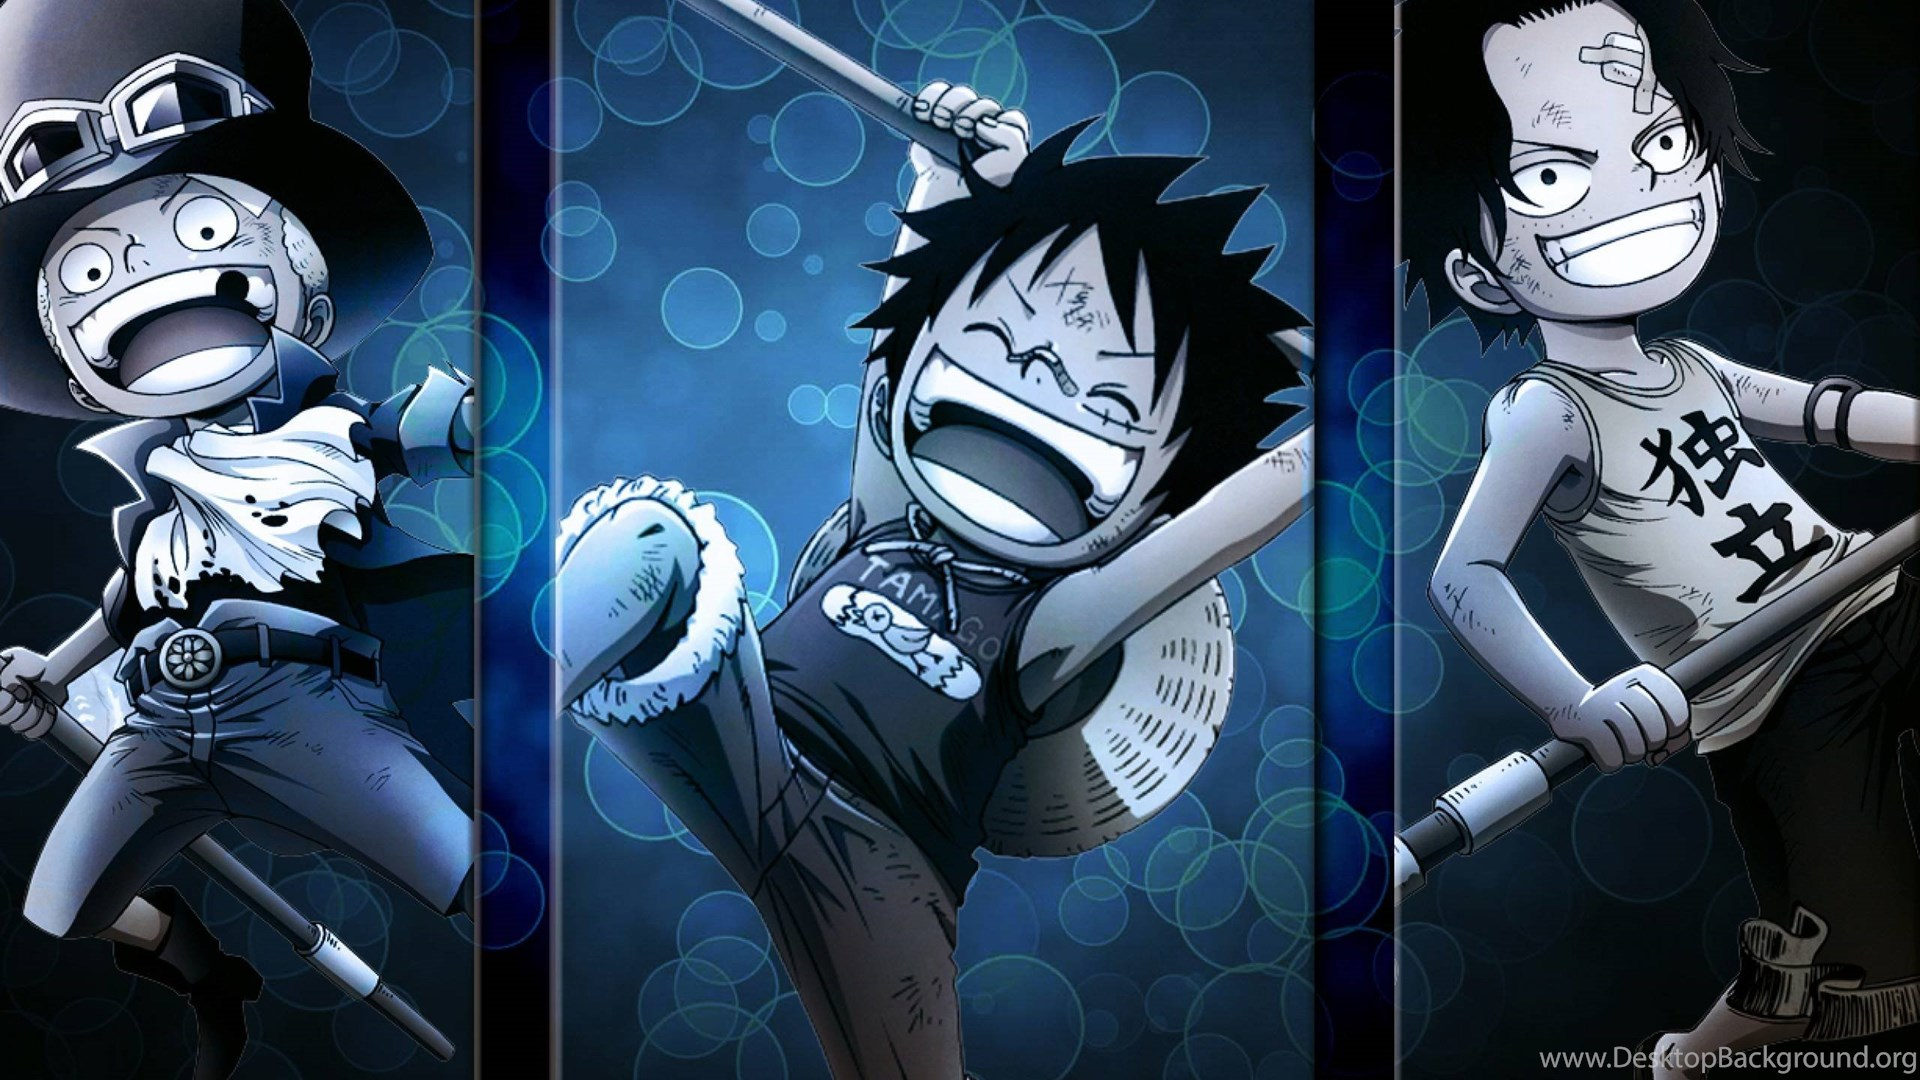 Sabo Luffy And Ace One Piece Wallpapers Desktop Background